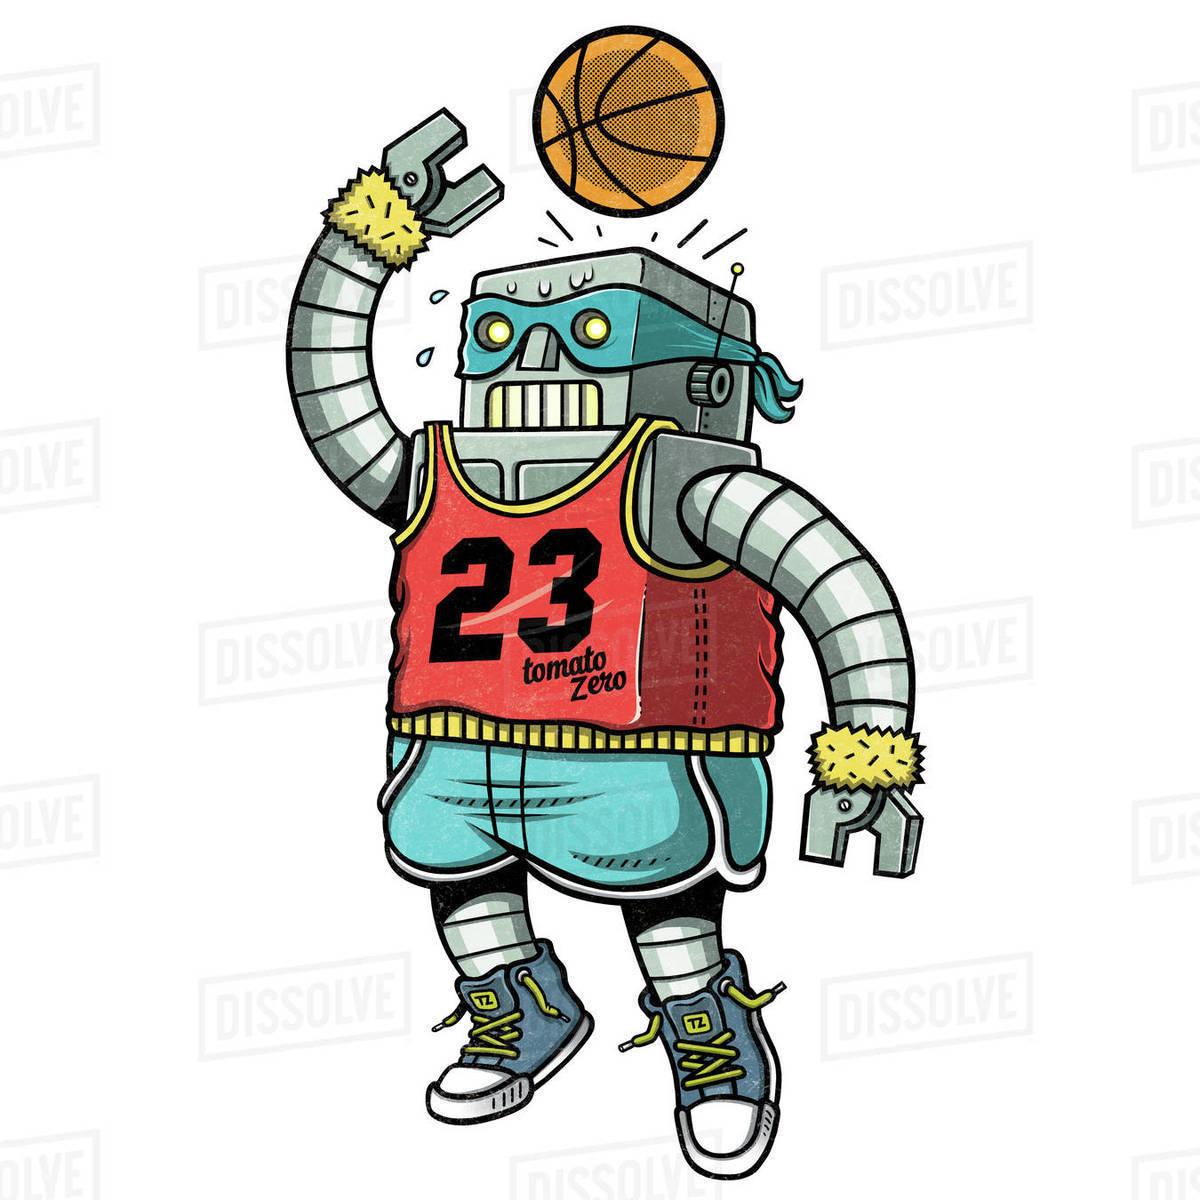 Cartoon illustration of a robot playing basketball against white background Royalty-free stock photo